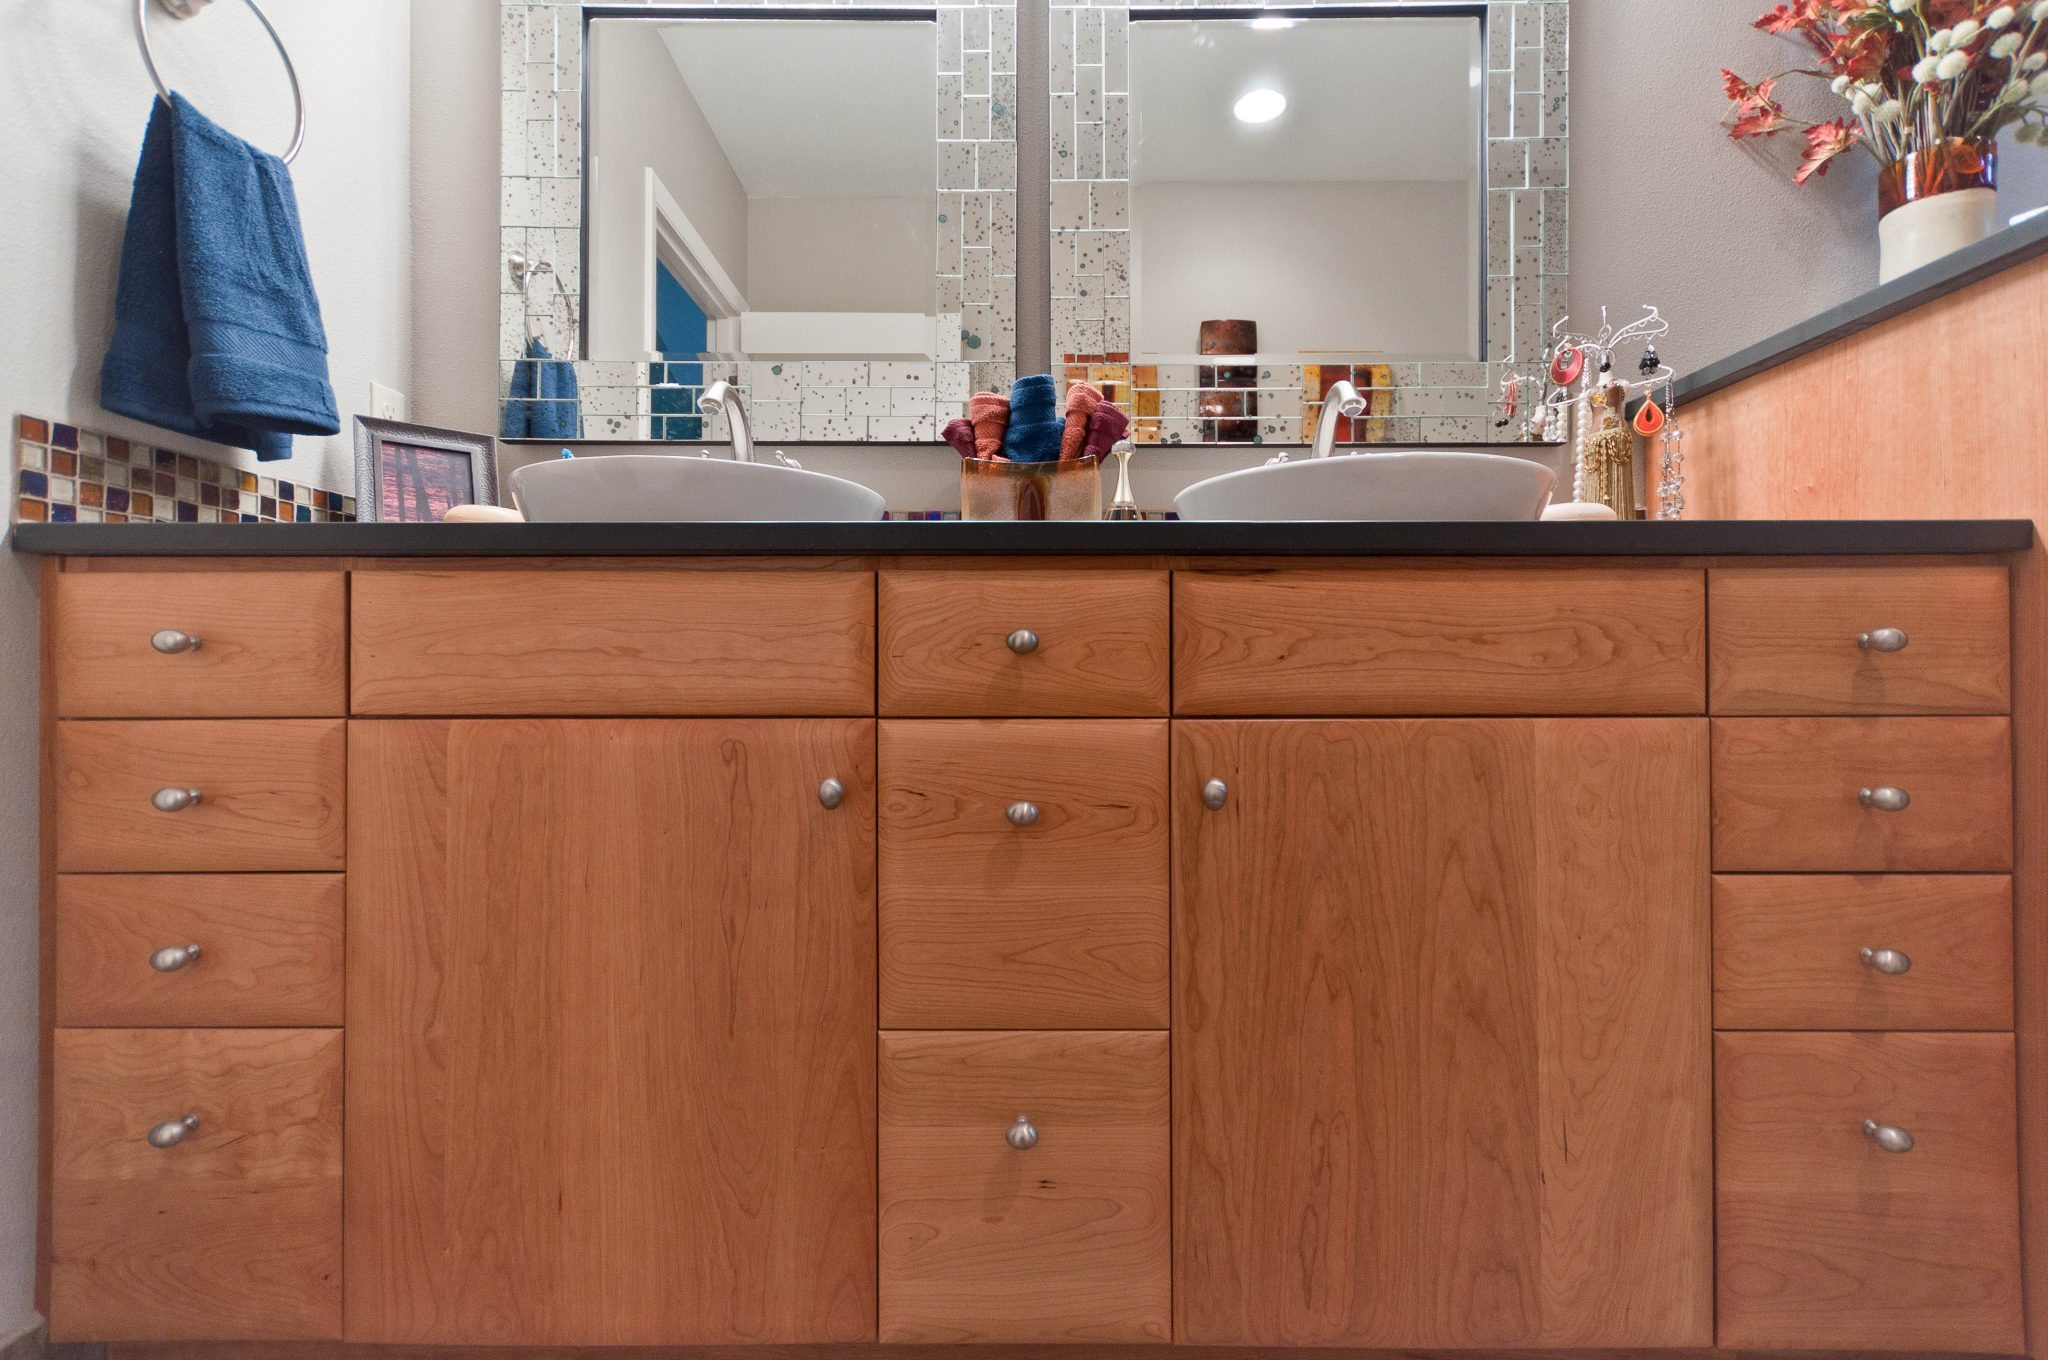 Double Sink Vanity & Cabinetry